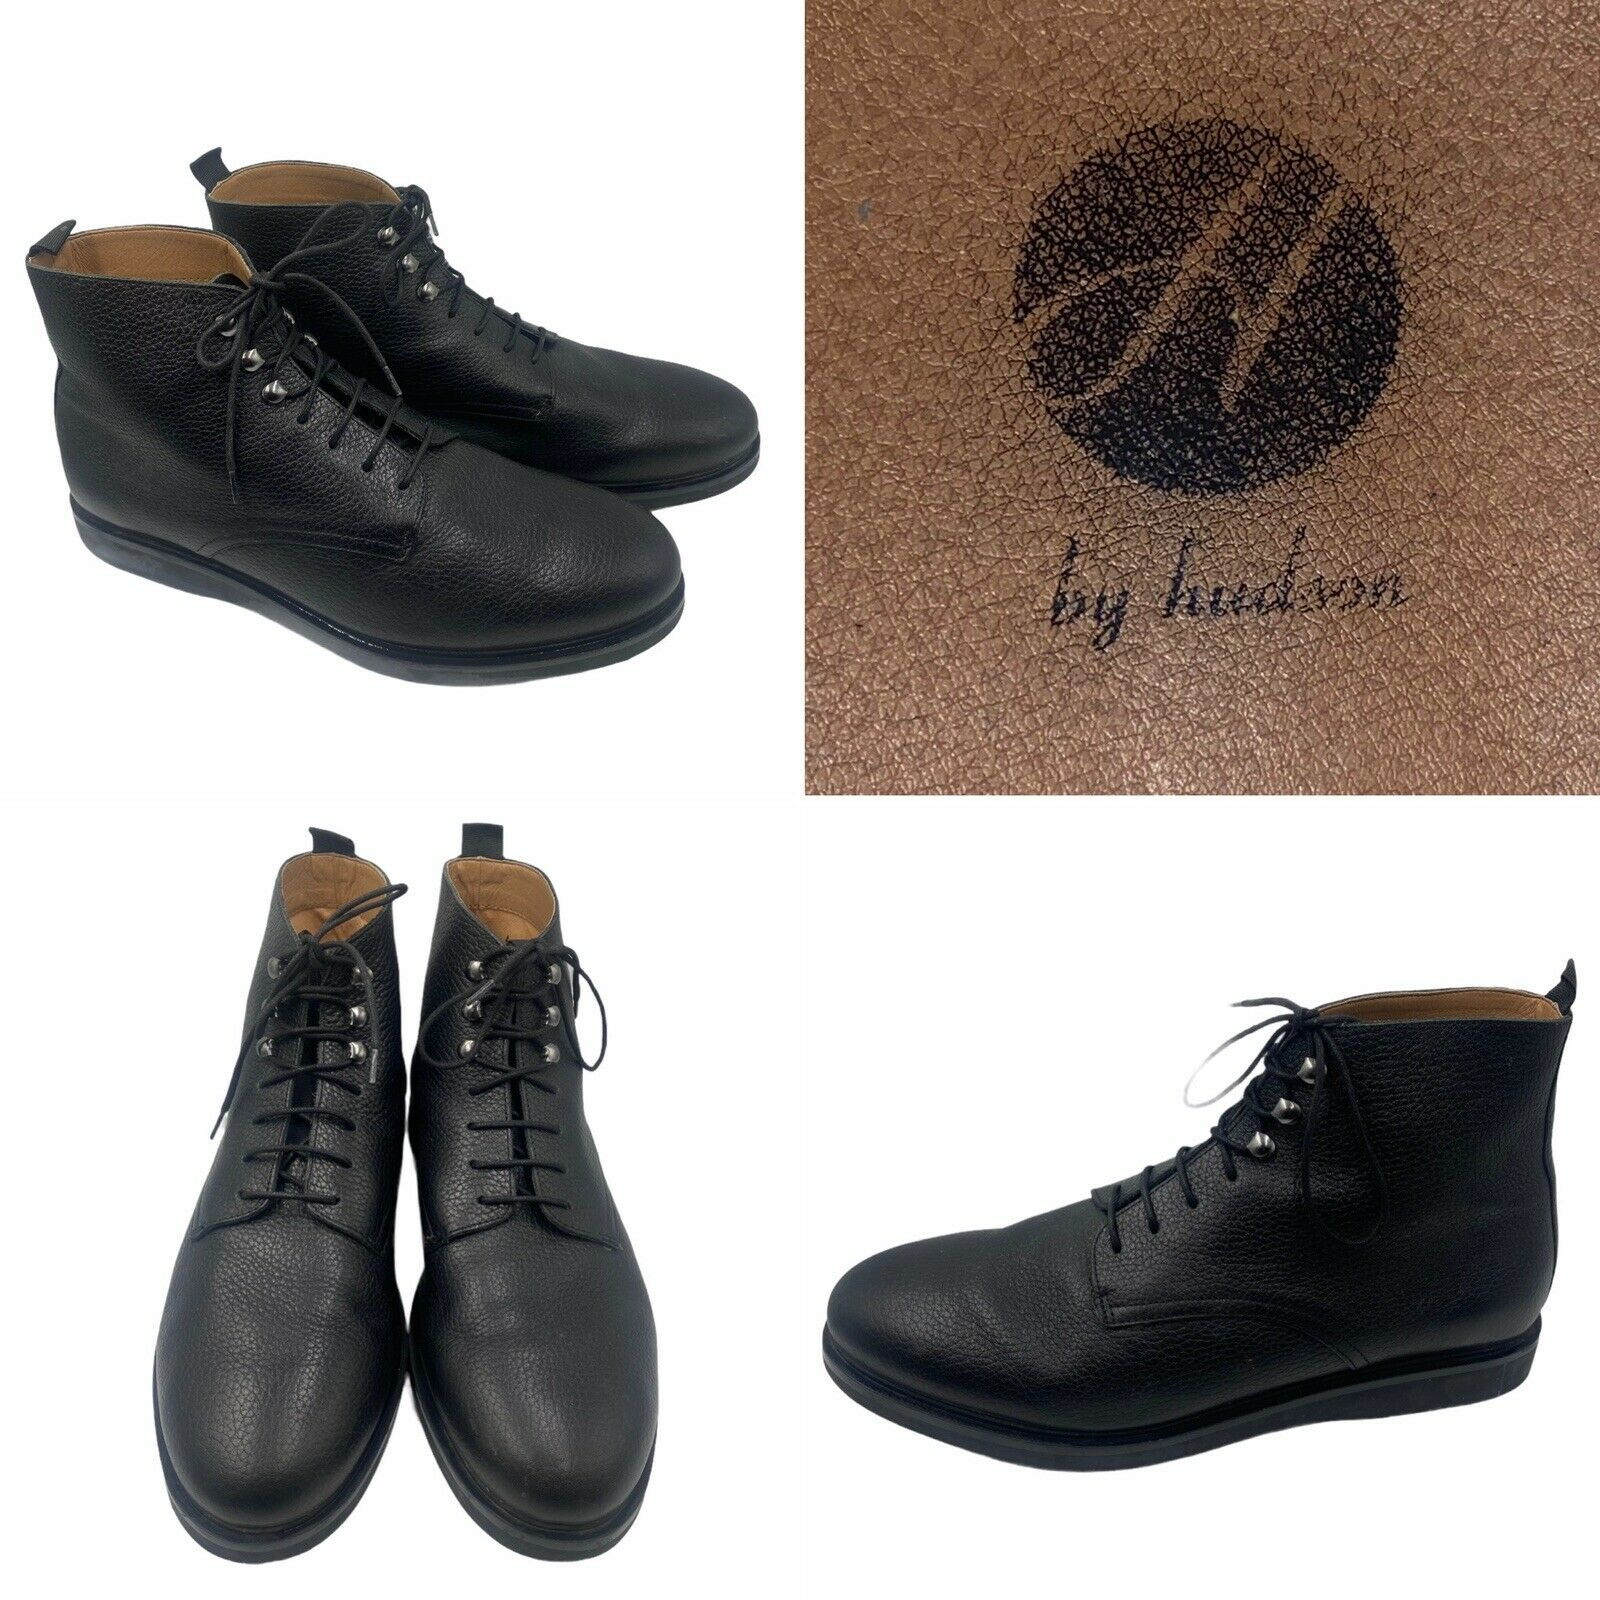 H by Hudson Mens Size 12 46 Battle Boots in Black Leather Lace Up